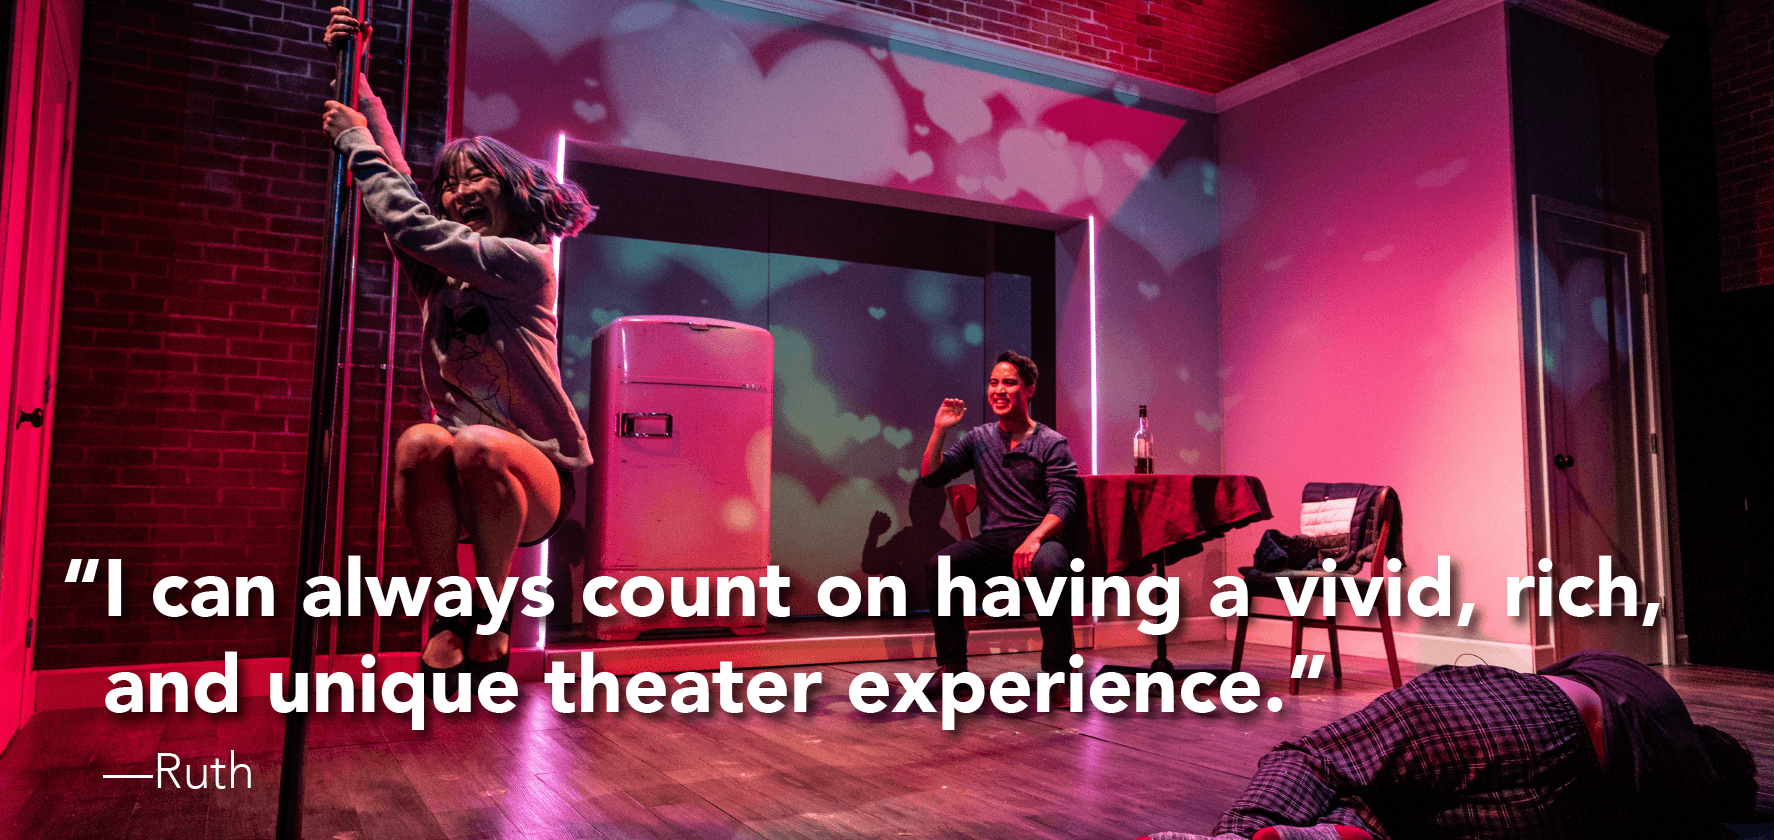 'I can always count on having a vivid, rich, and unique theater experience.'  —Ruth